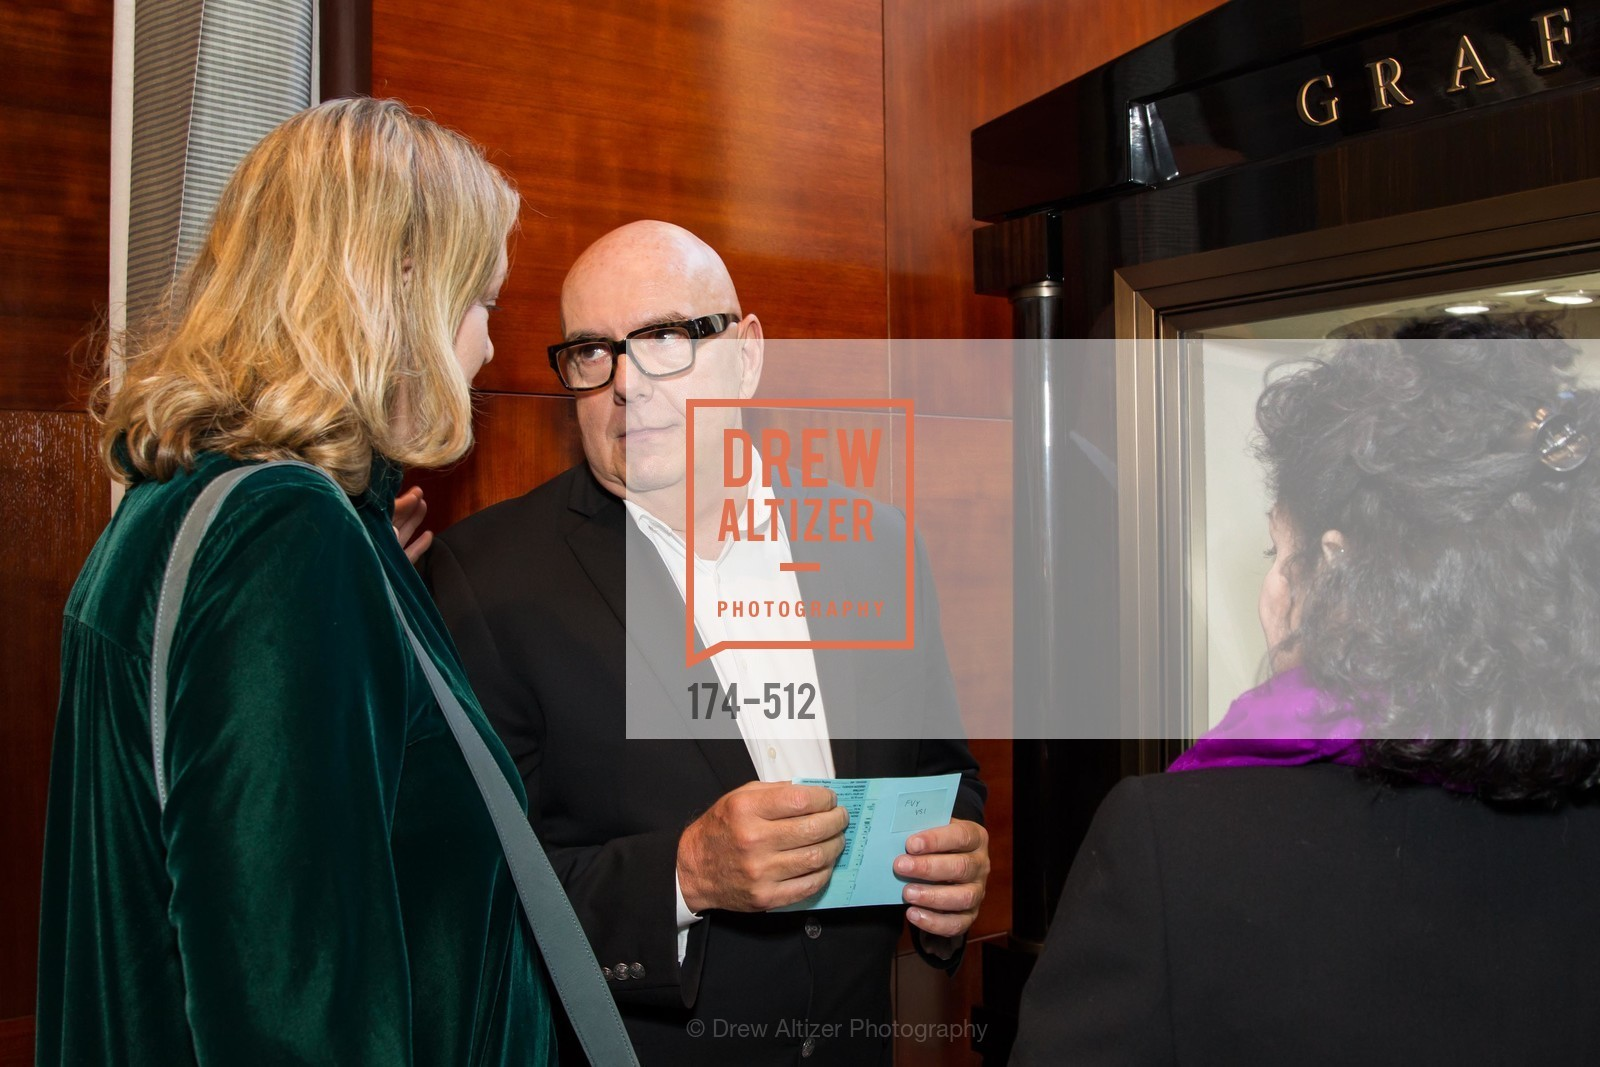 Robert Atkinson, GRAFF Celebrates SMUIN BALLET, US. 237 Post Street SF, April 9th, 2014,Drew Altizer, Drew Altizer Photography, full-service event agency, private events, San Francisco photographer, photographer California